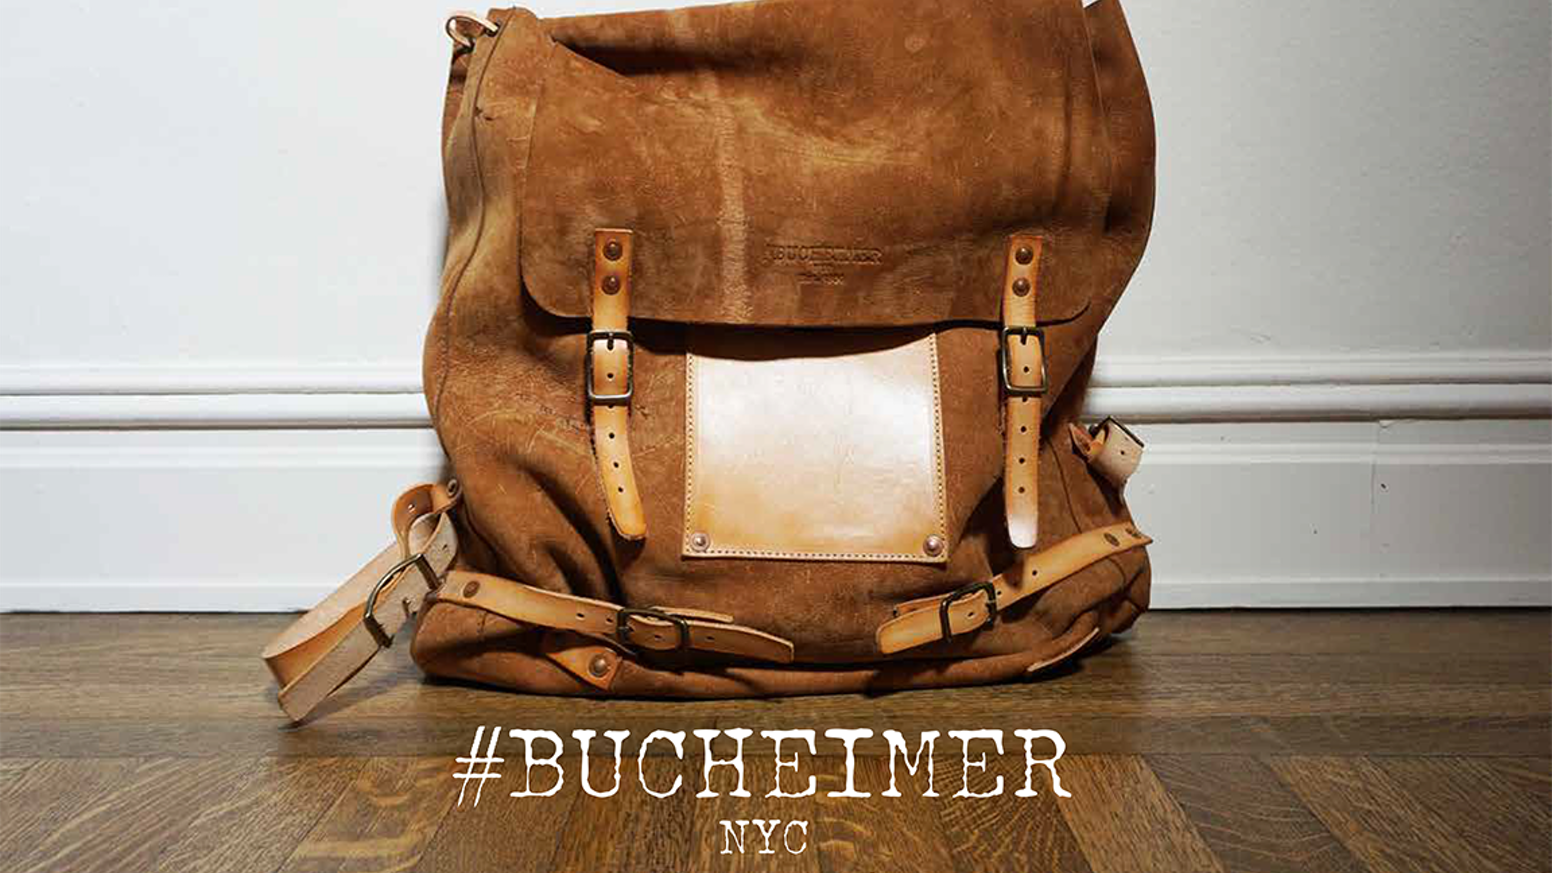 Made In America Leather Bags And Accessories By Bucheimer